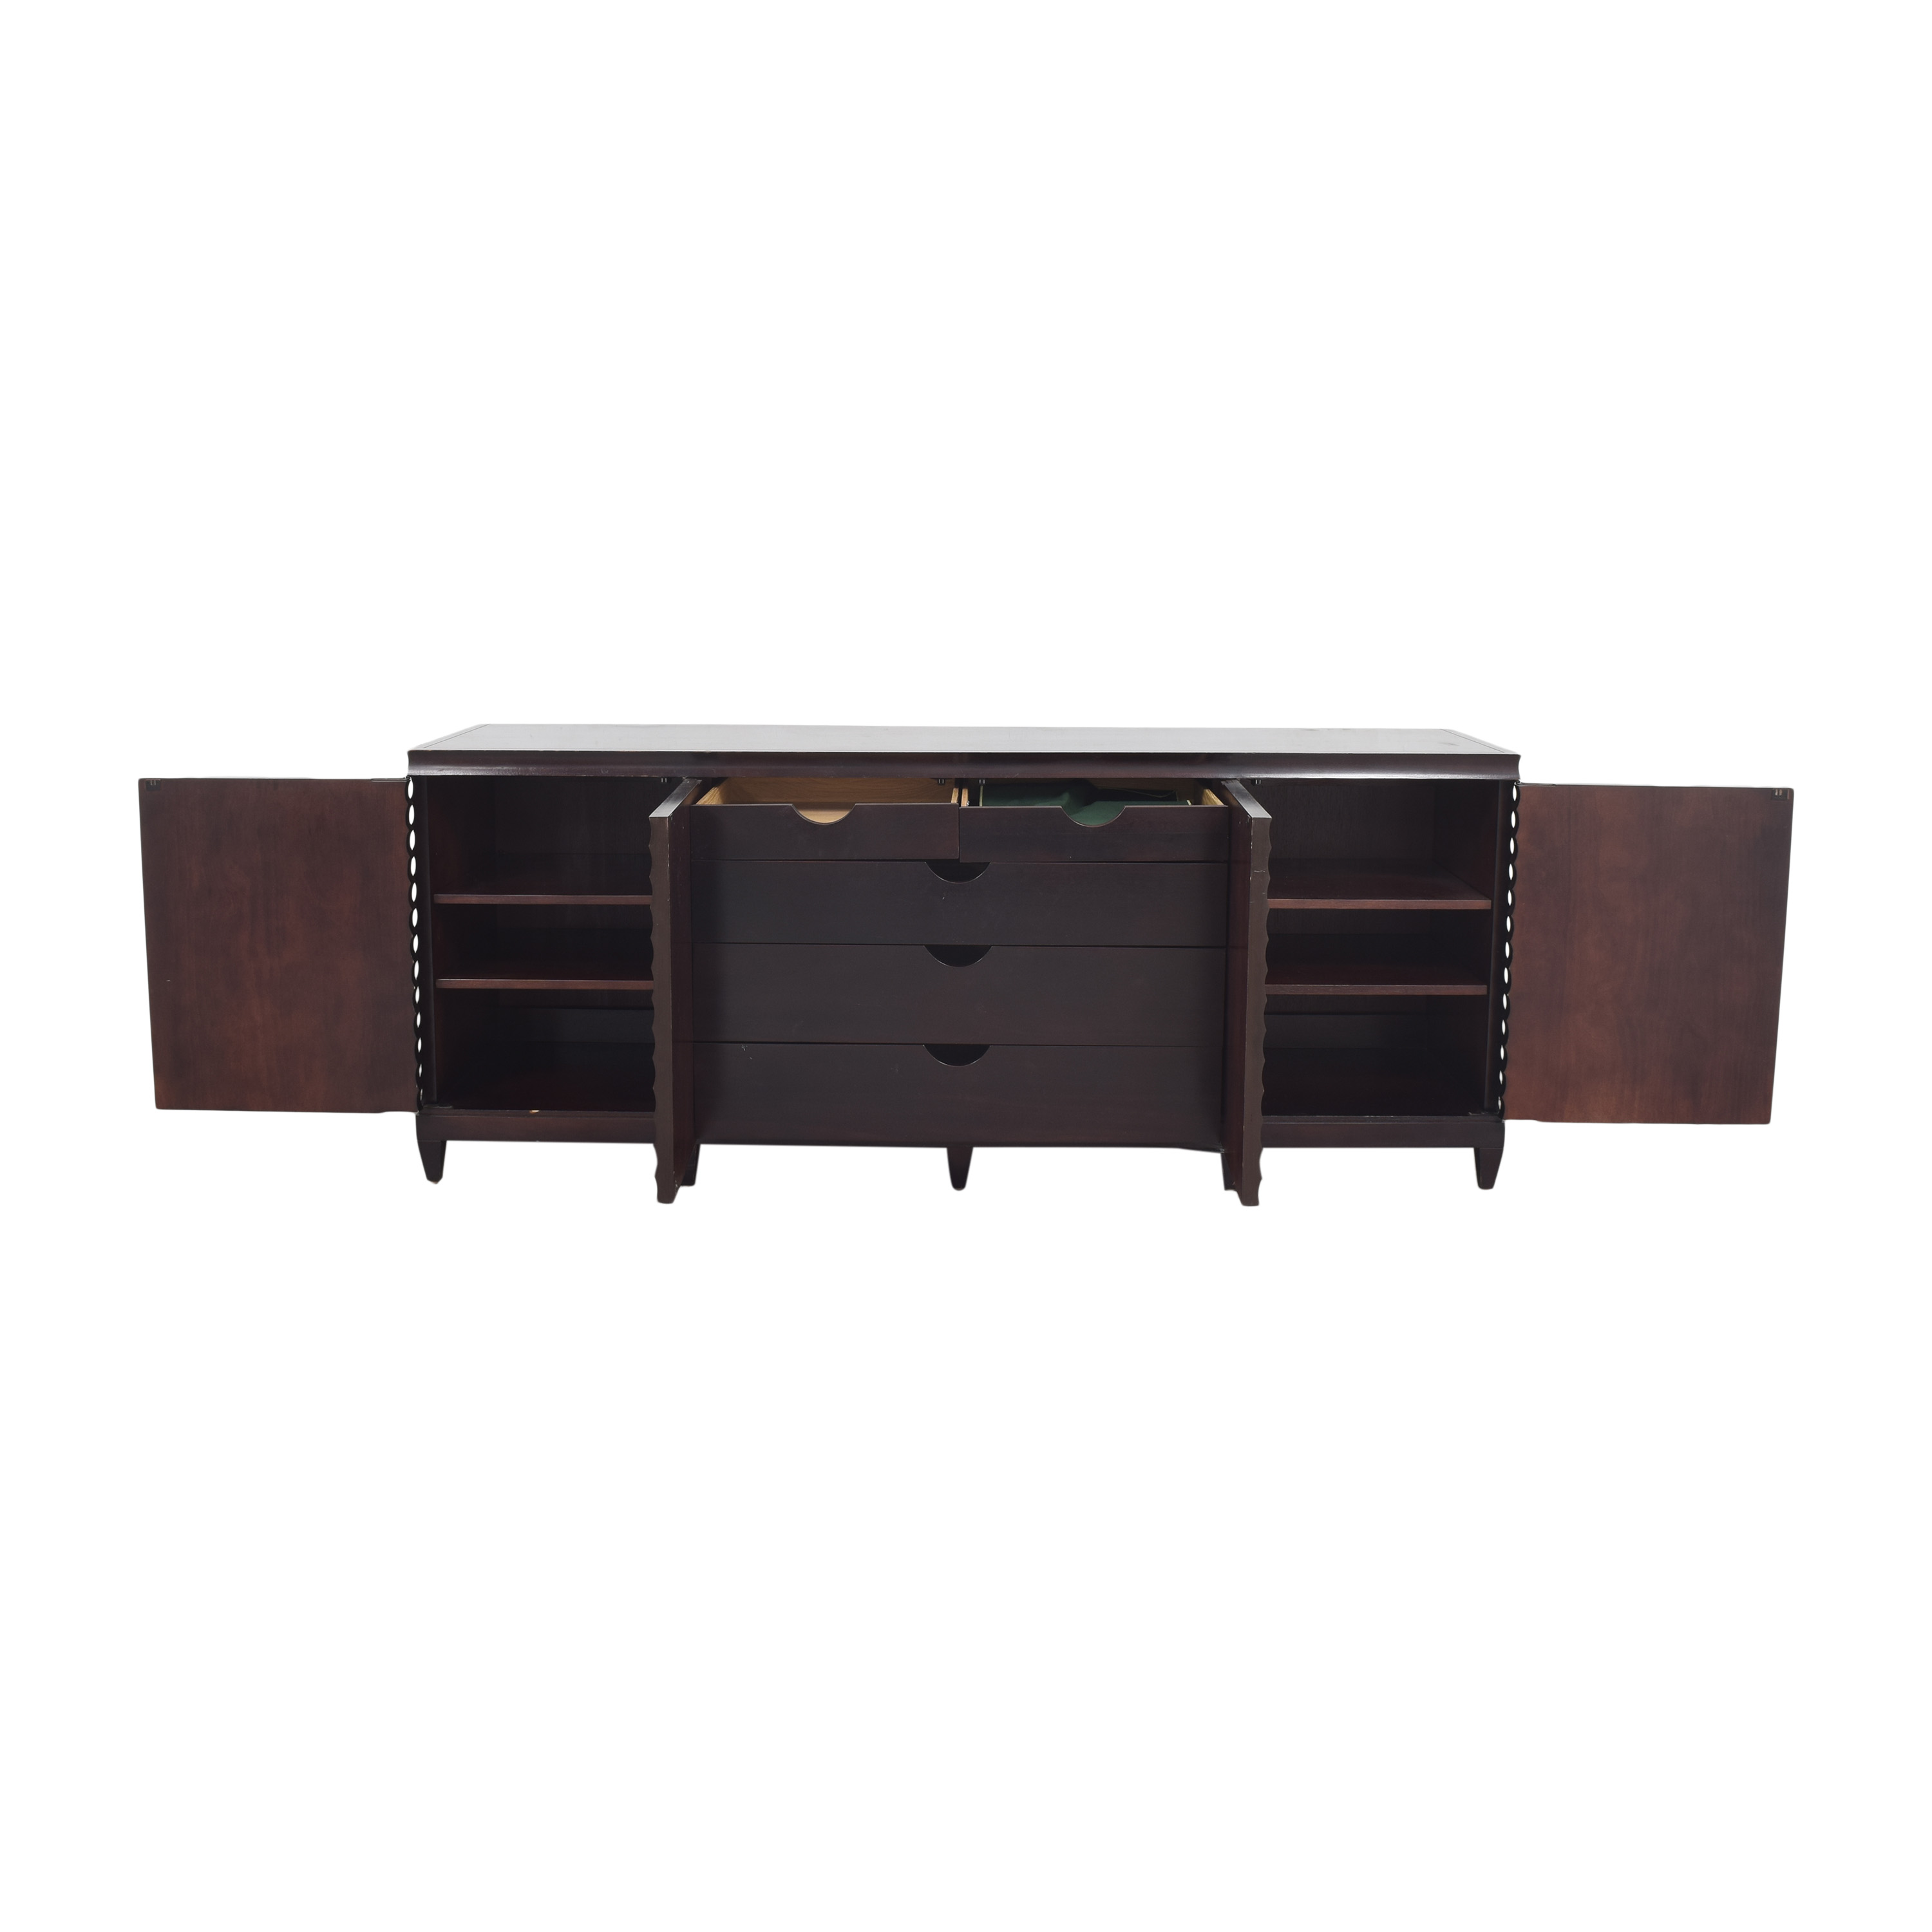 Baker Furniture Baker Furniture by Barbara Barry Fluted Low Cabinet ma